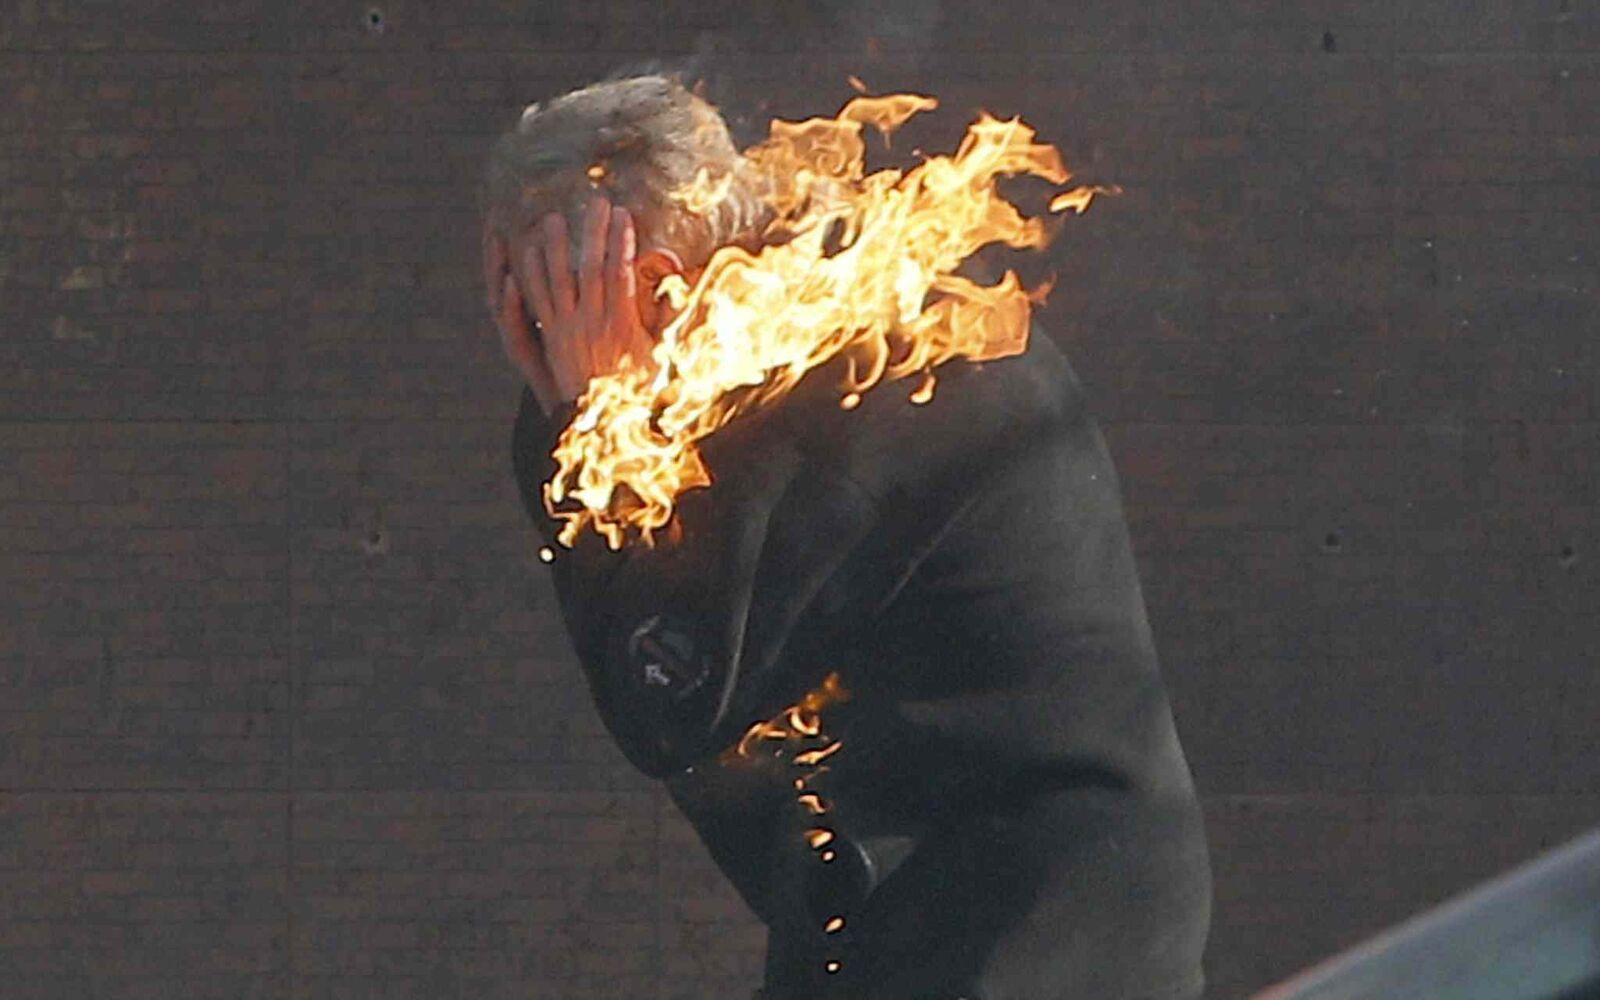 An anti-government protester is engulfed in flames during clashes with riot police outside Ukraine's parliament in Kyiv on Tuesday.